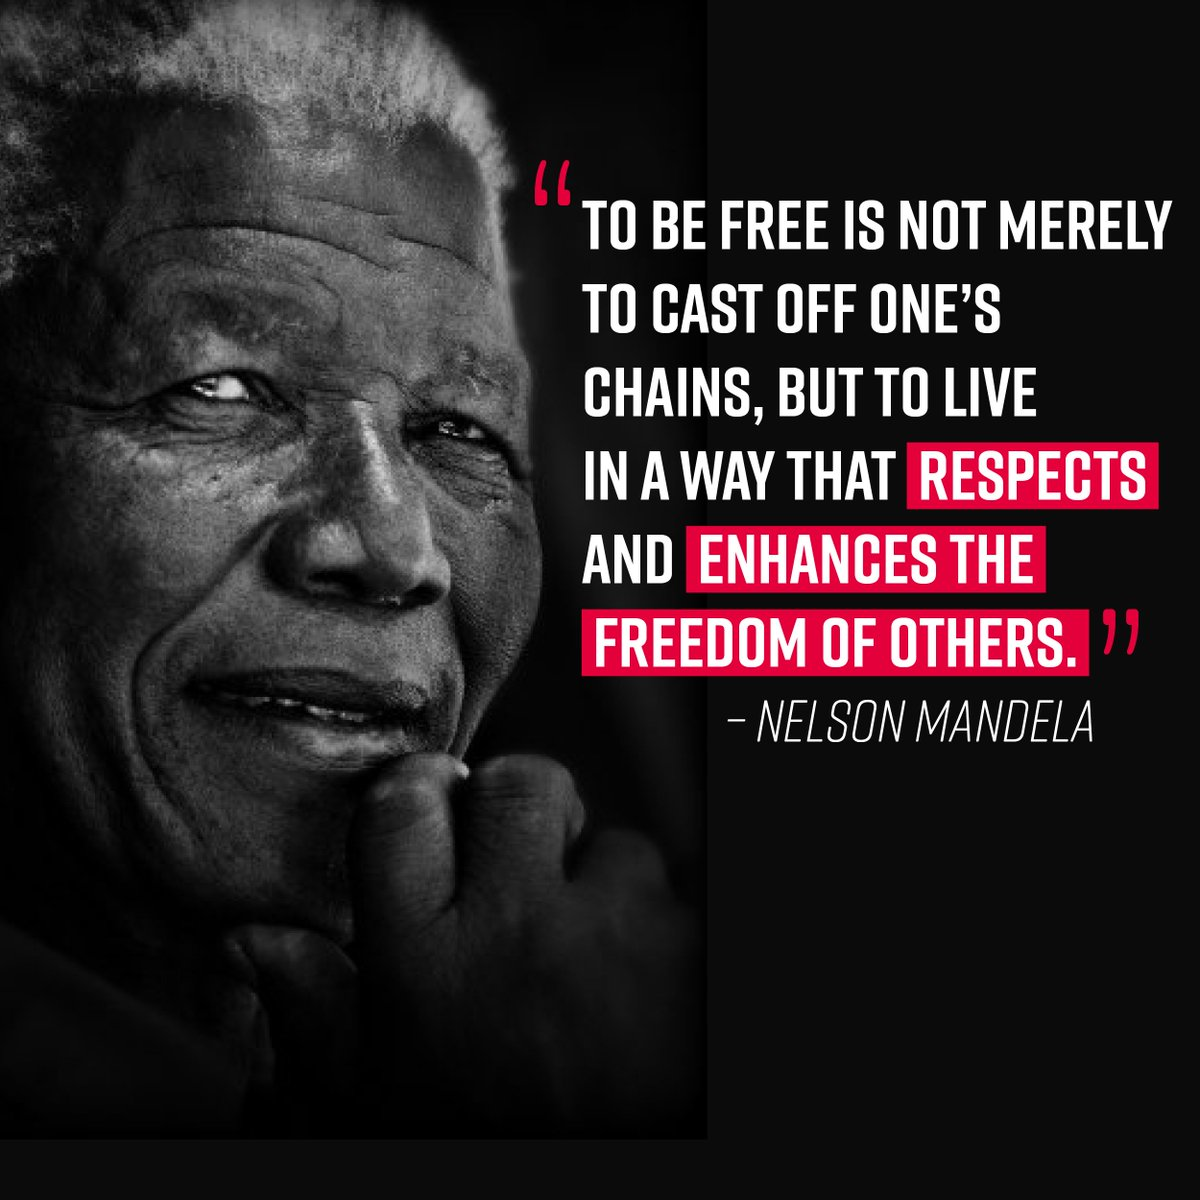 Nelson Mandela was born 100 years ago today.  He continues to inspire.